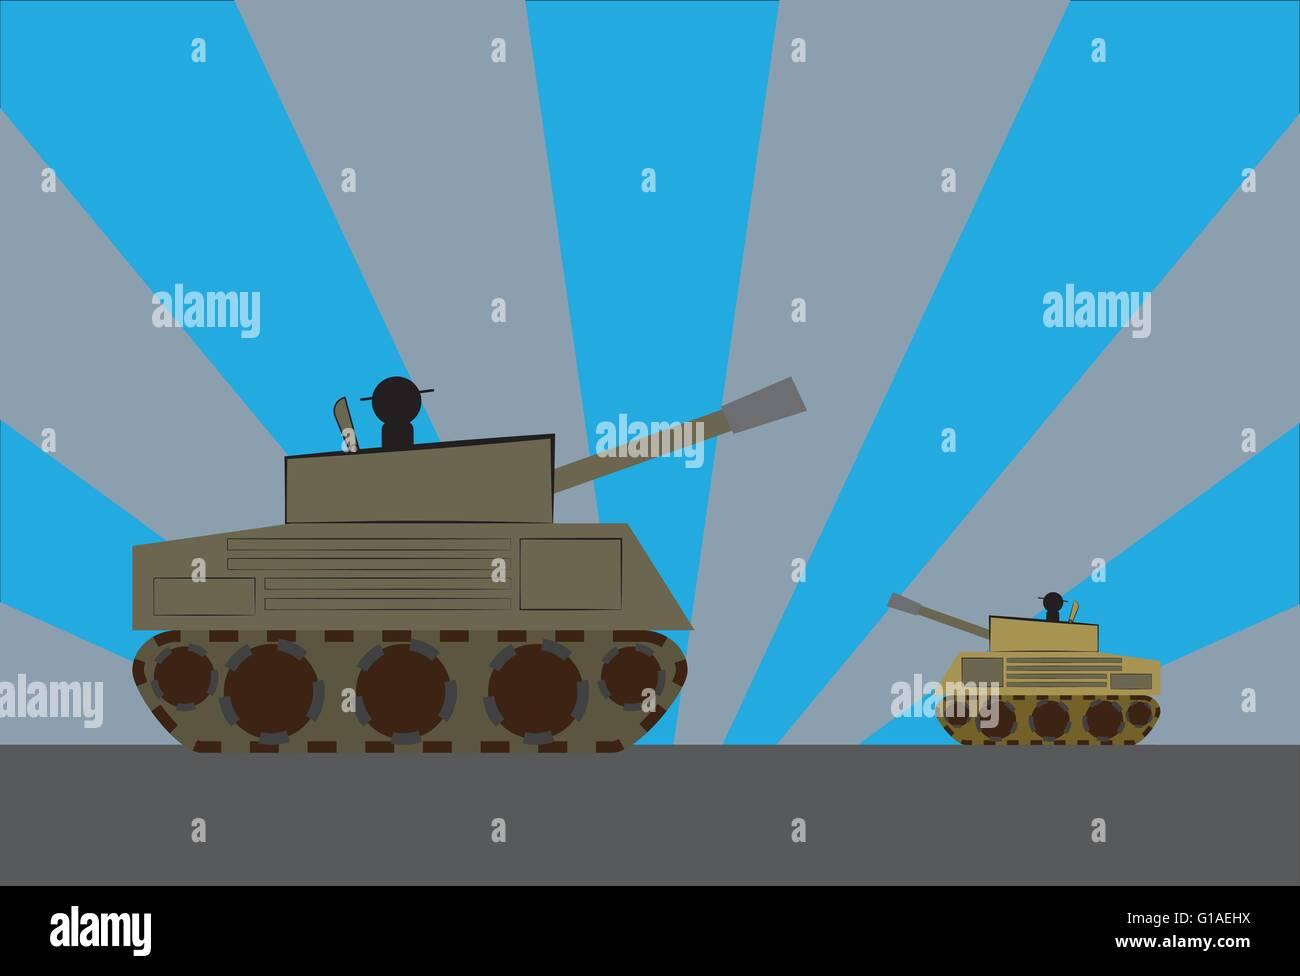 Two tanks facing each other, big and powerful vs small and vulnerable - Stock Vector